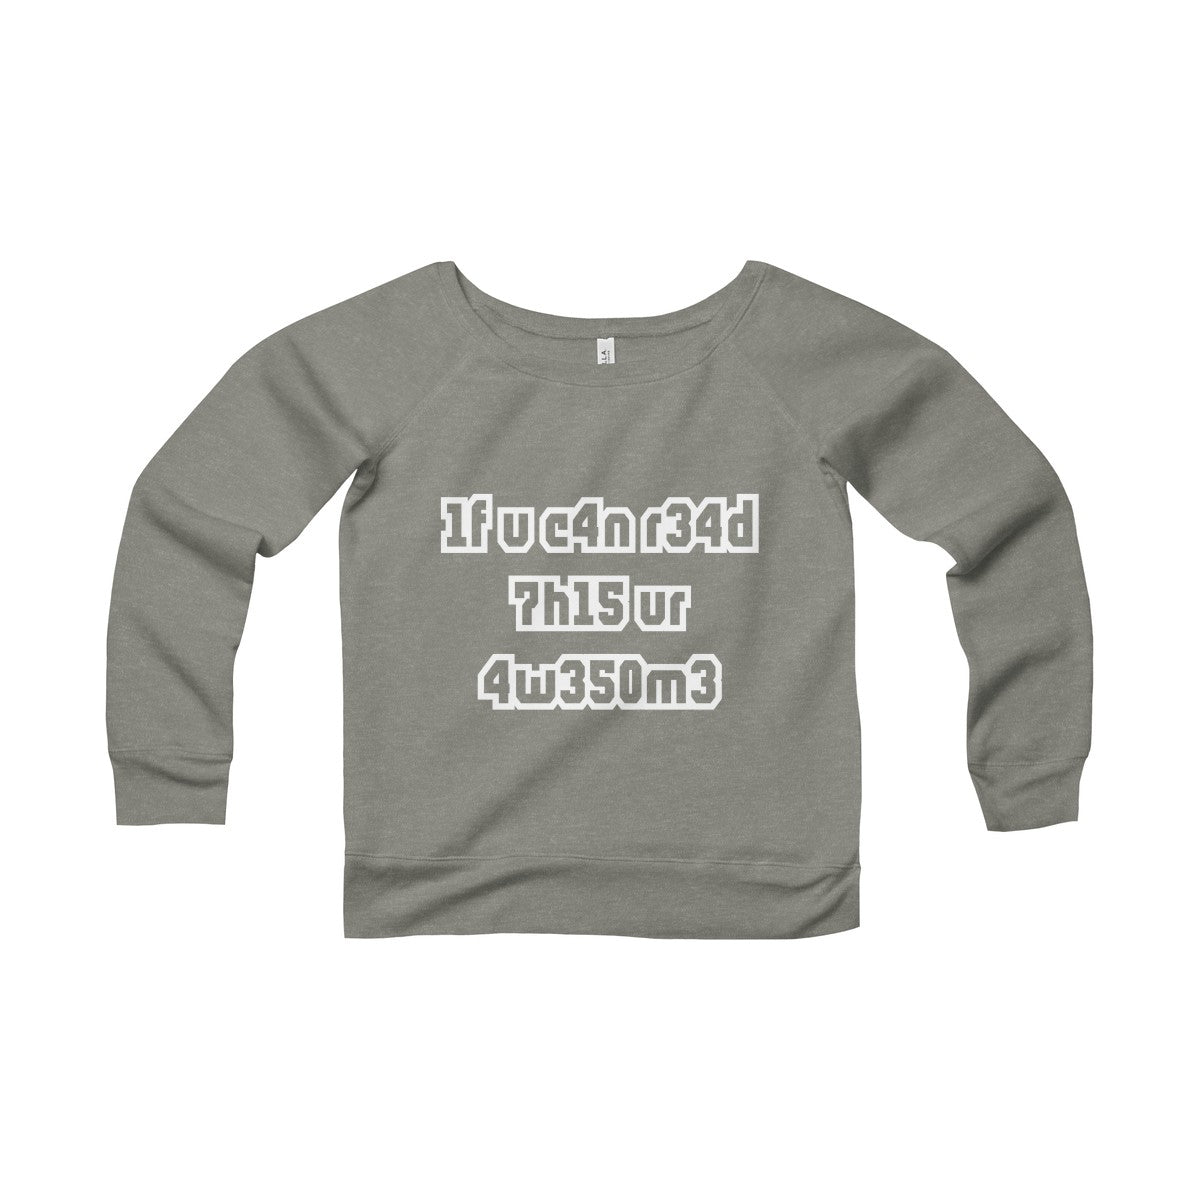 if you can read this you're awesome women's wide-neck sweater Nerdedness